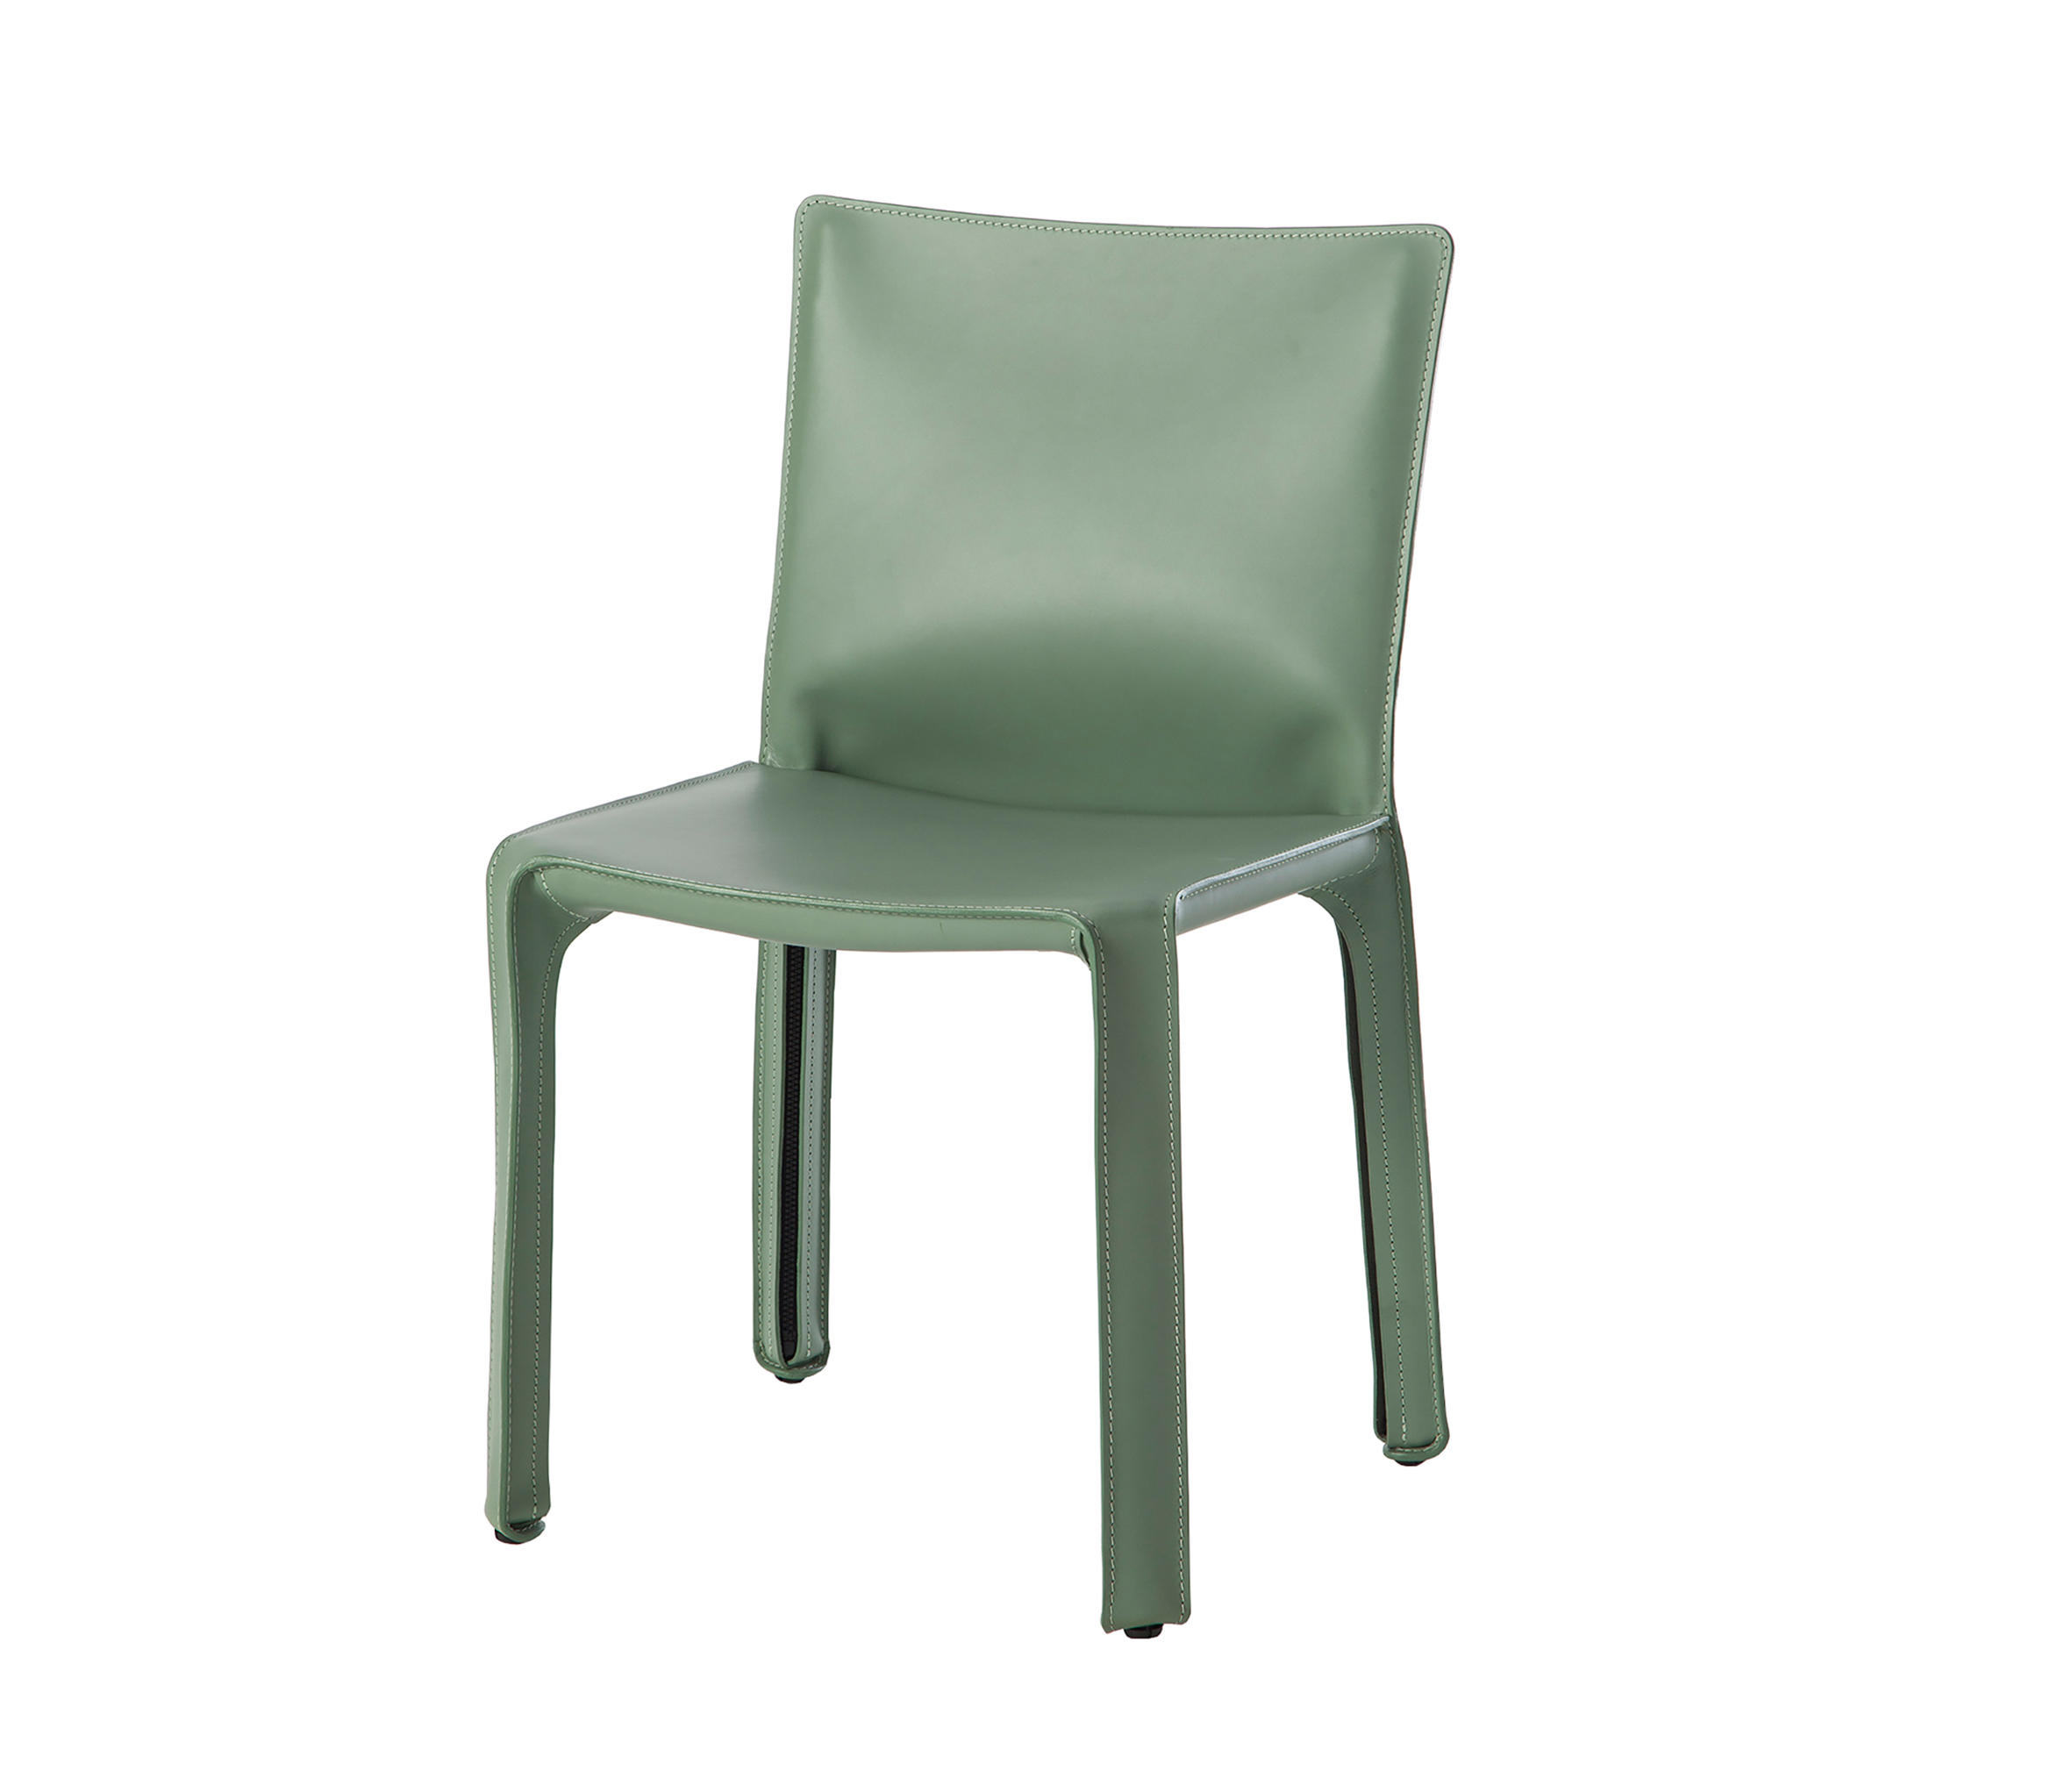 412 CAB Restaurant Chairs From Cassina